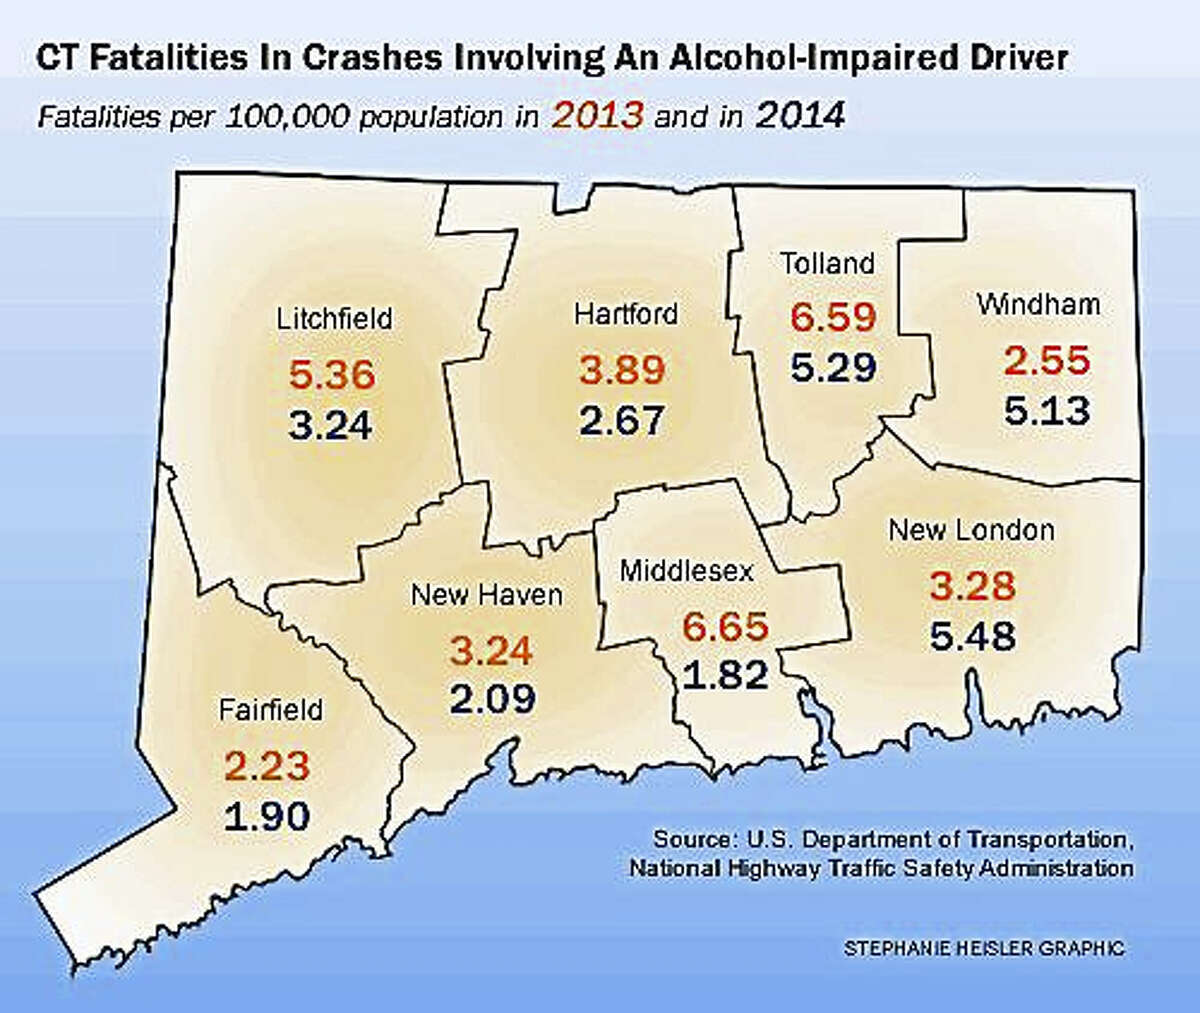 Fatalities in Connecticut crashes involving an alcohol-impaired driver.